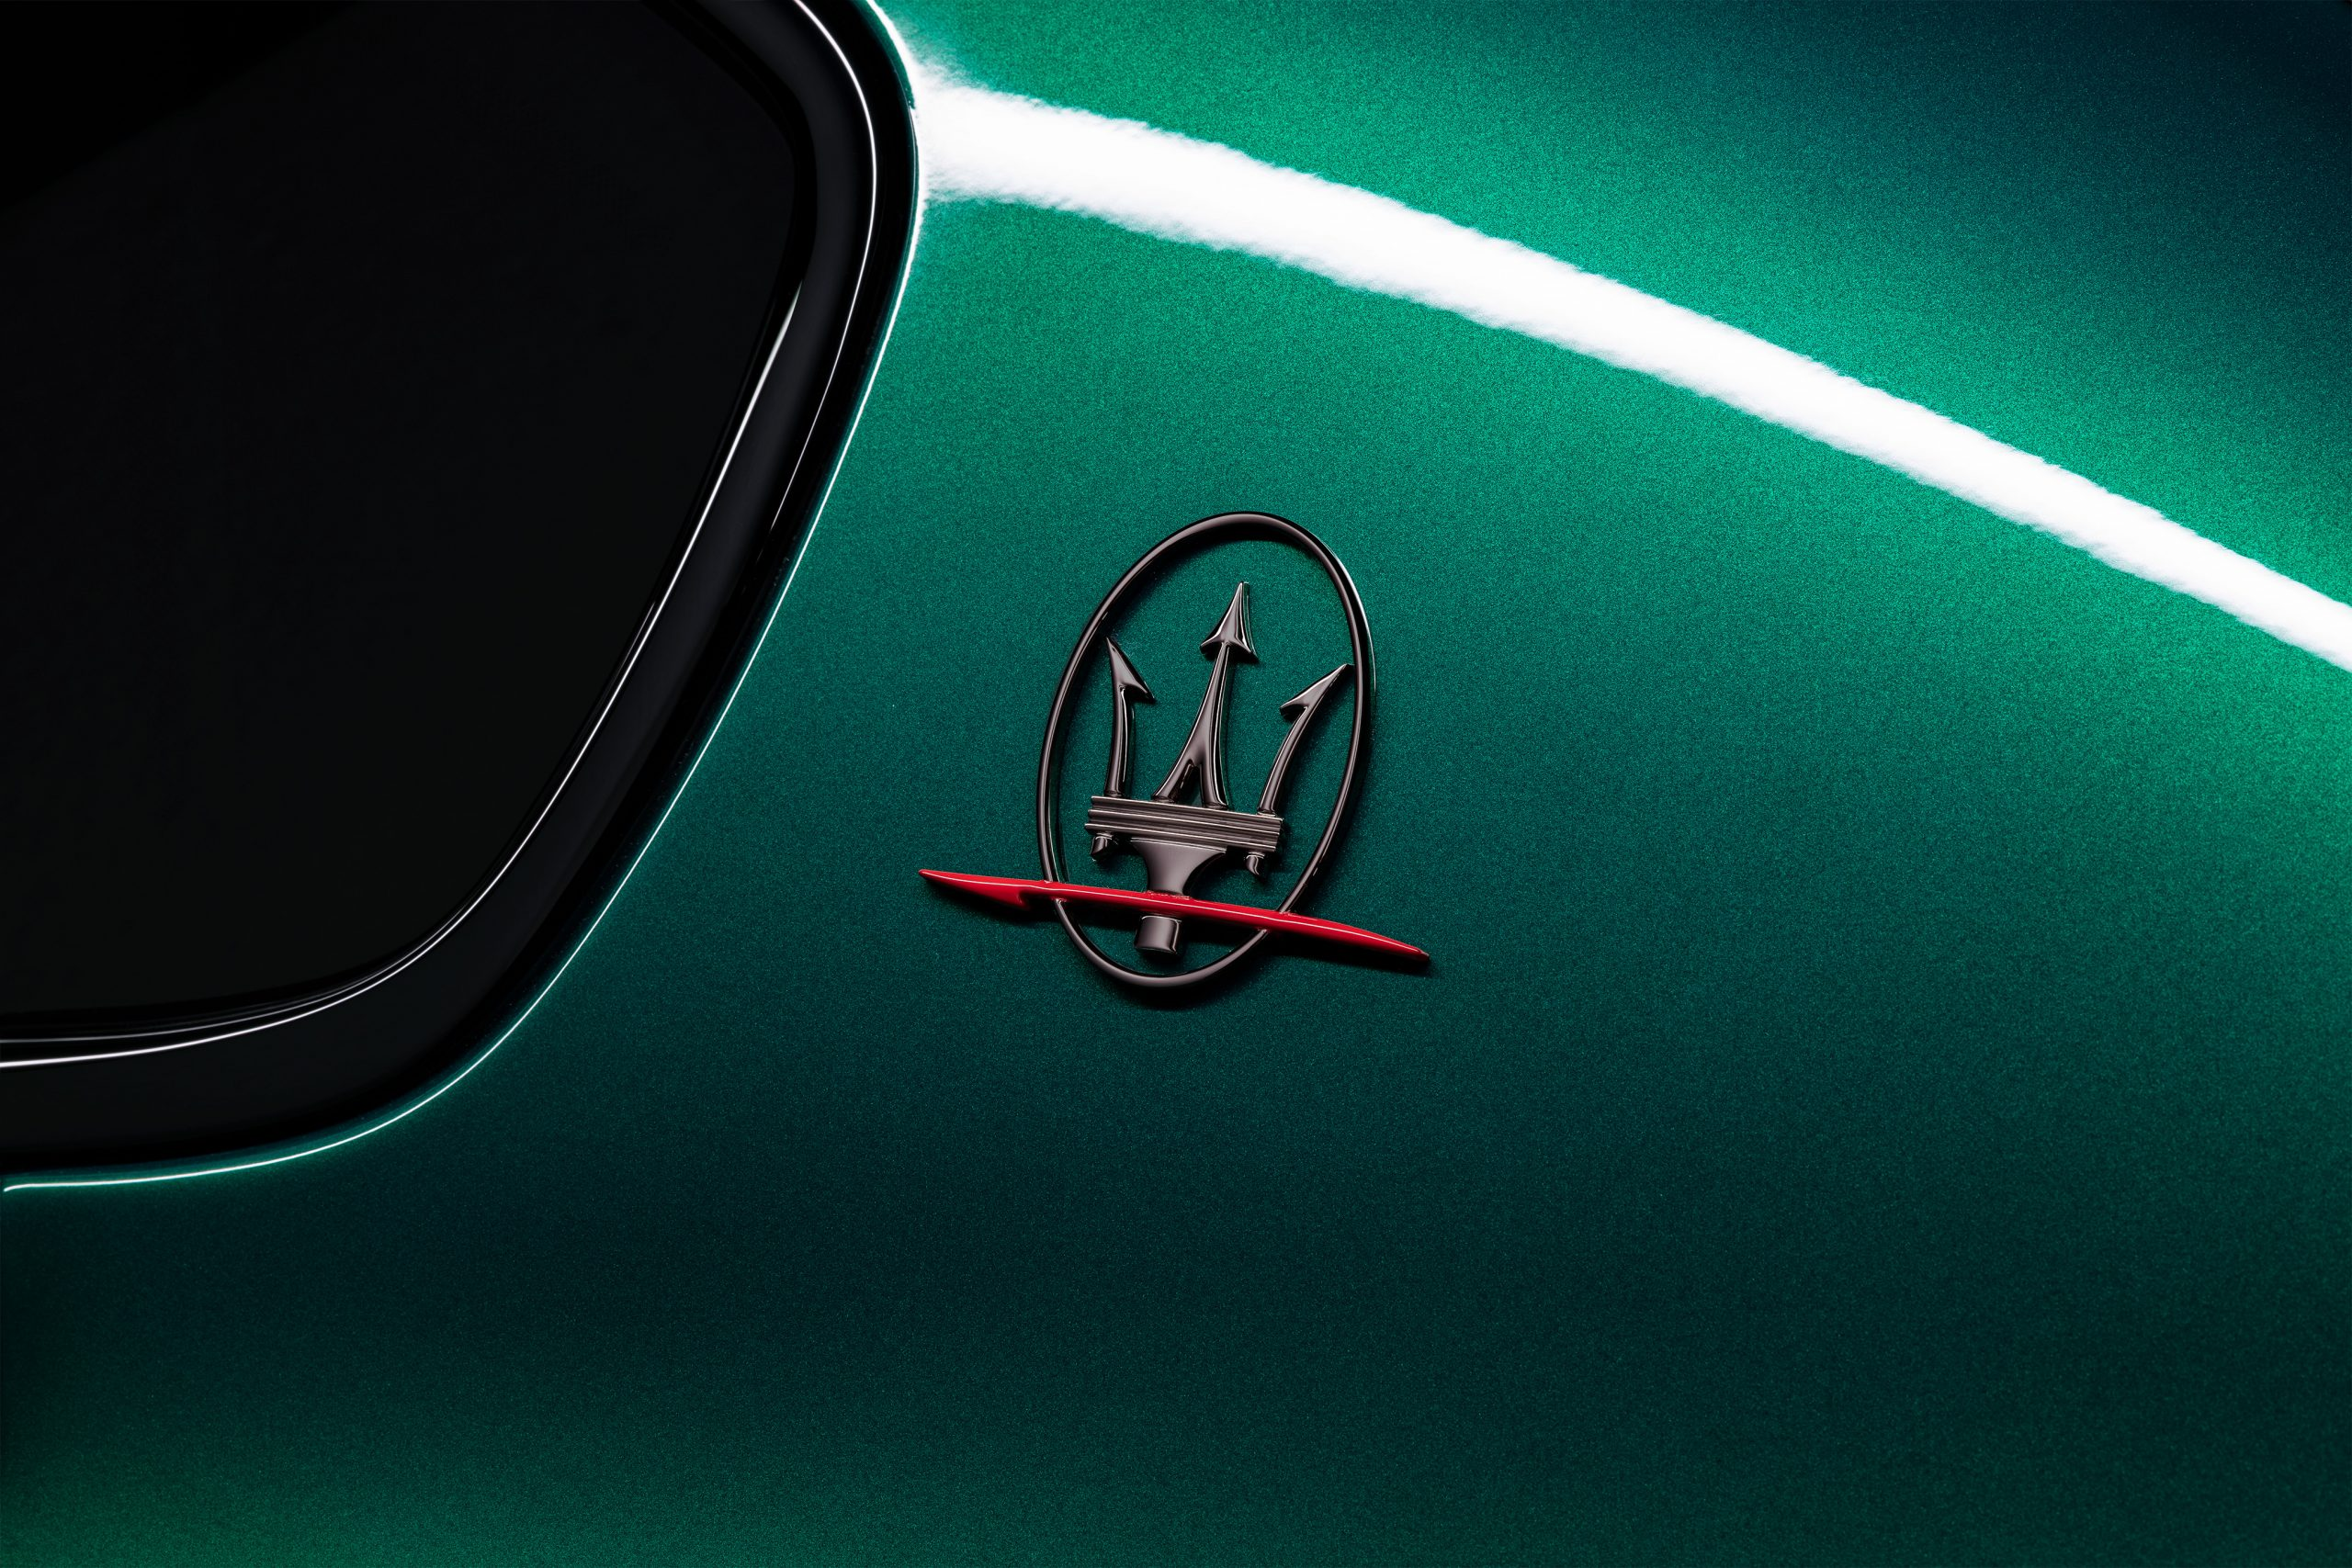 green trofeo quattroporte trident badge close up